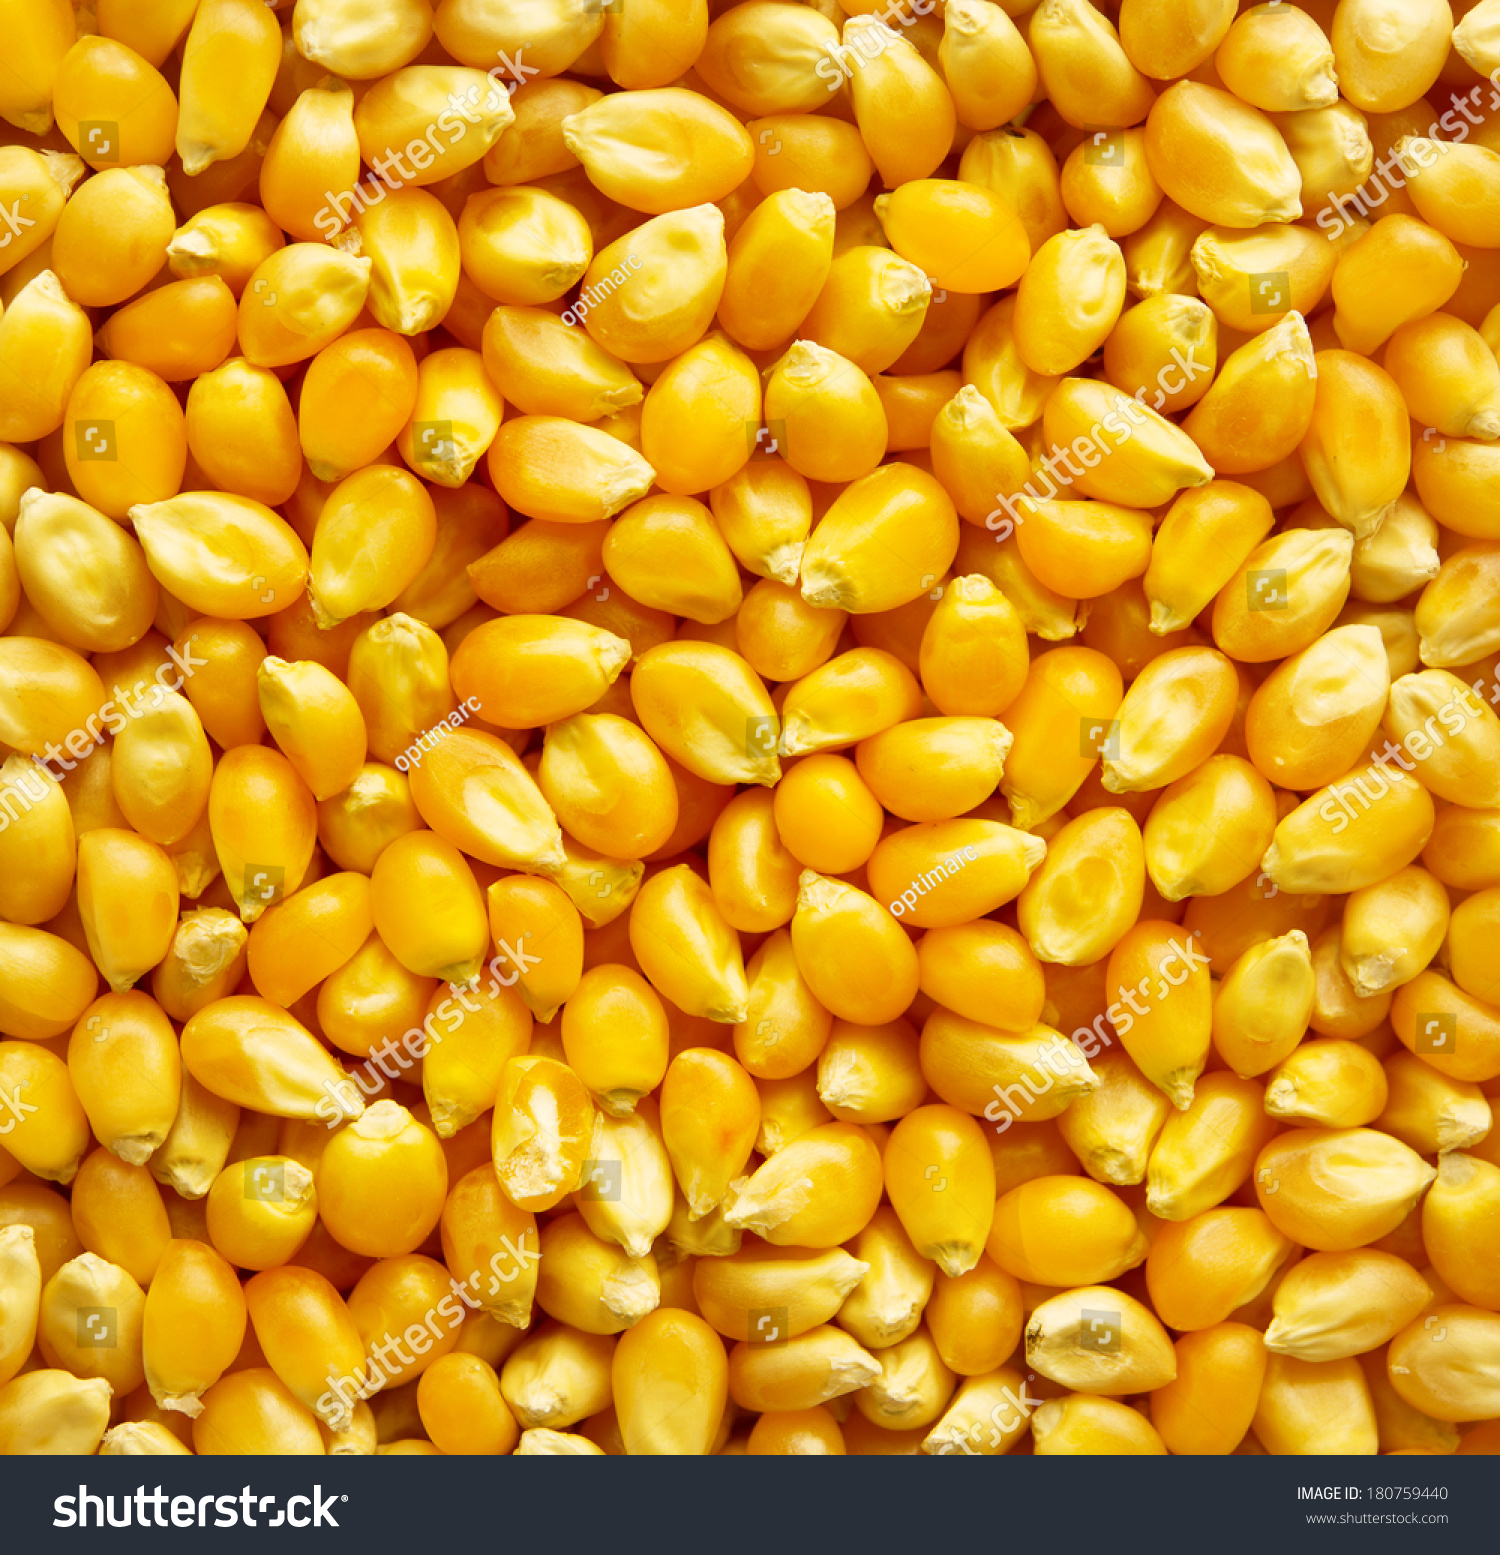 Dried corn kernels unpopped popcorn kernels stock photo 180759440 dried corn kernels or unpopped popcorn kernels ccuart Choice Image